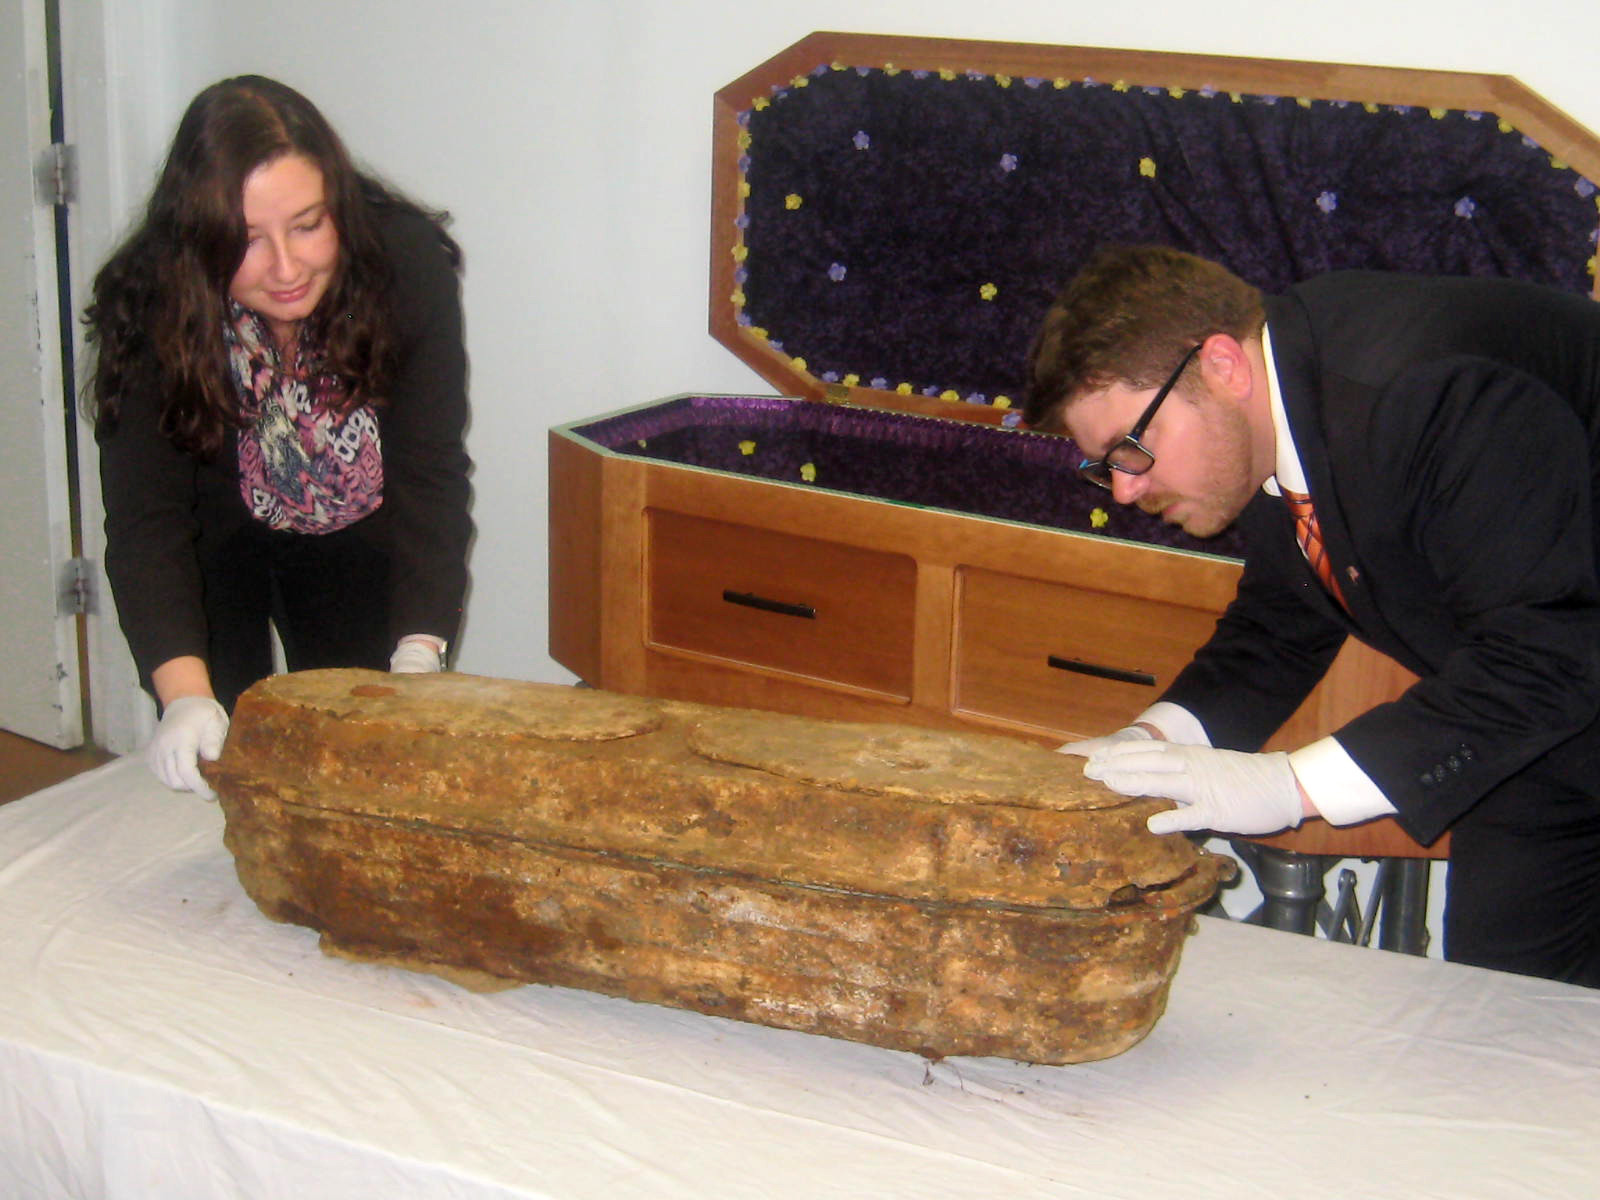 Mystery solved: Remains of girl in forgotten casket was daughter of